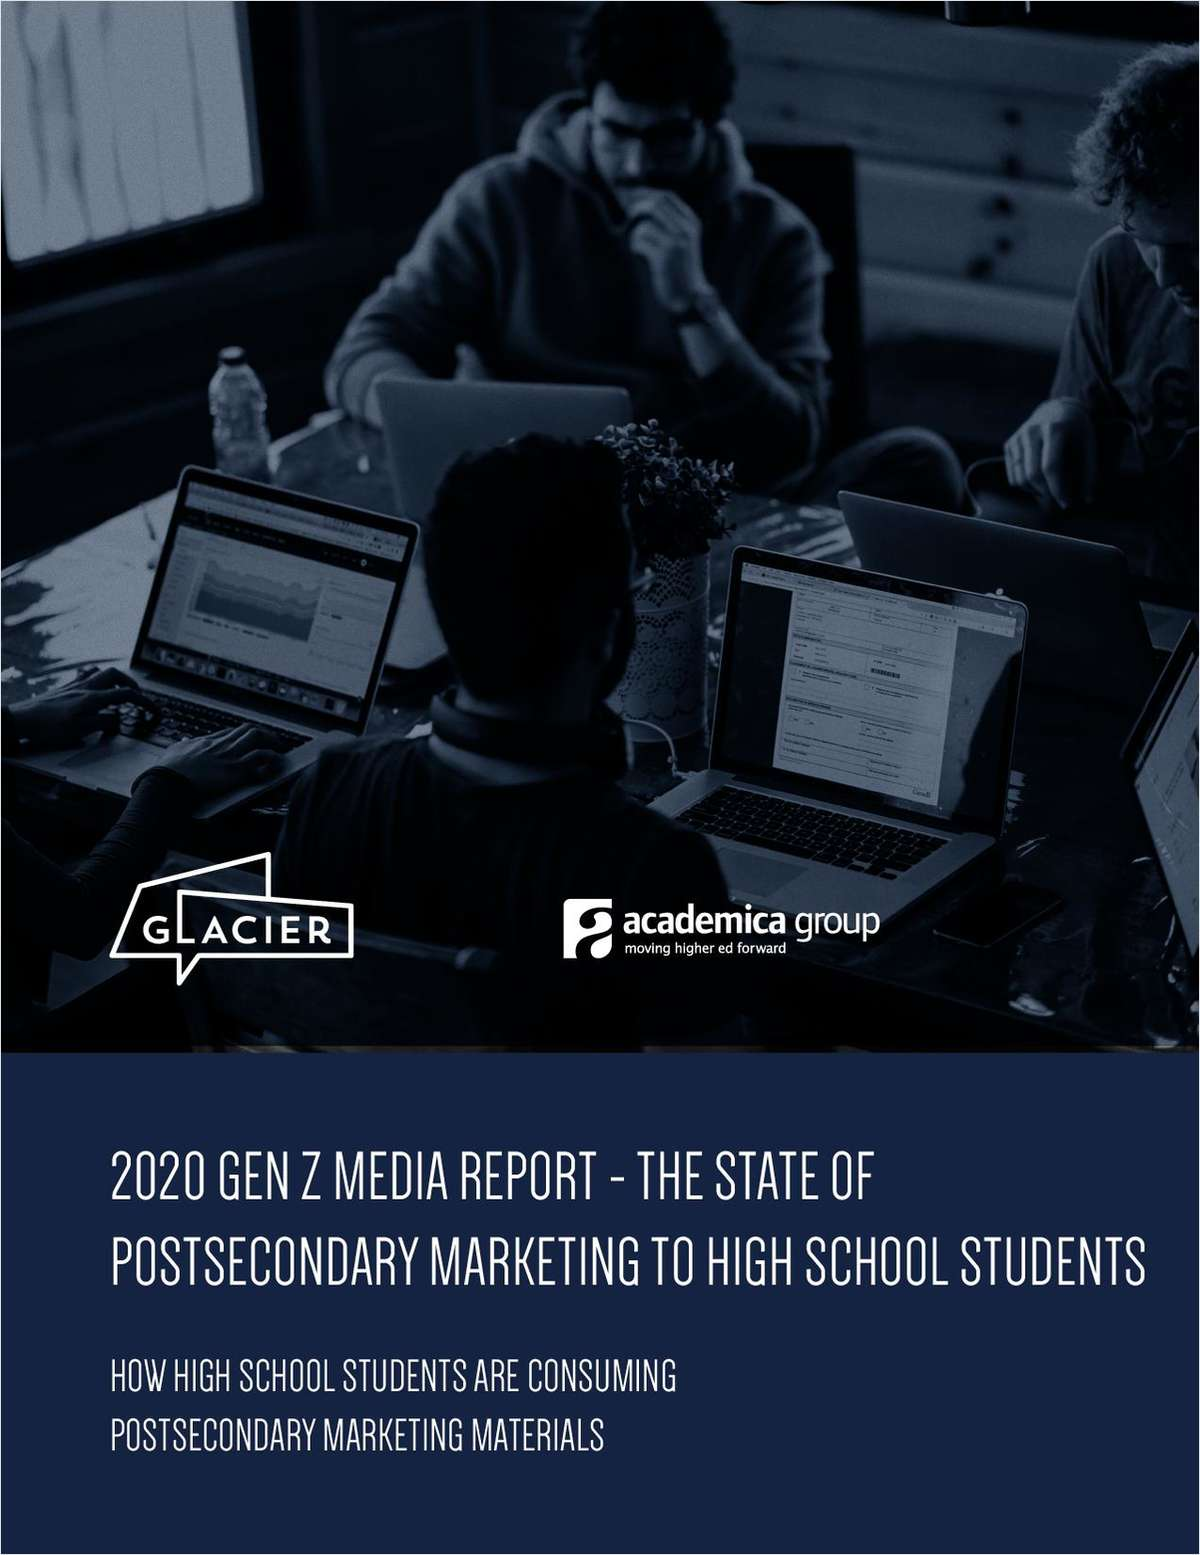 2020 GEN Z MEDIA REPORT - THE STATE OF POSTSECONDARY MARKETING TO HIGH SCHOOL STUDENTS